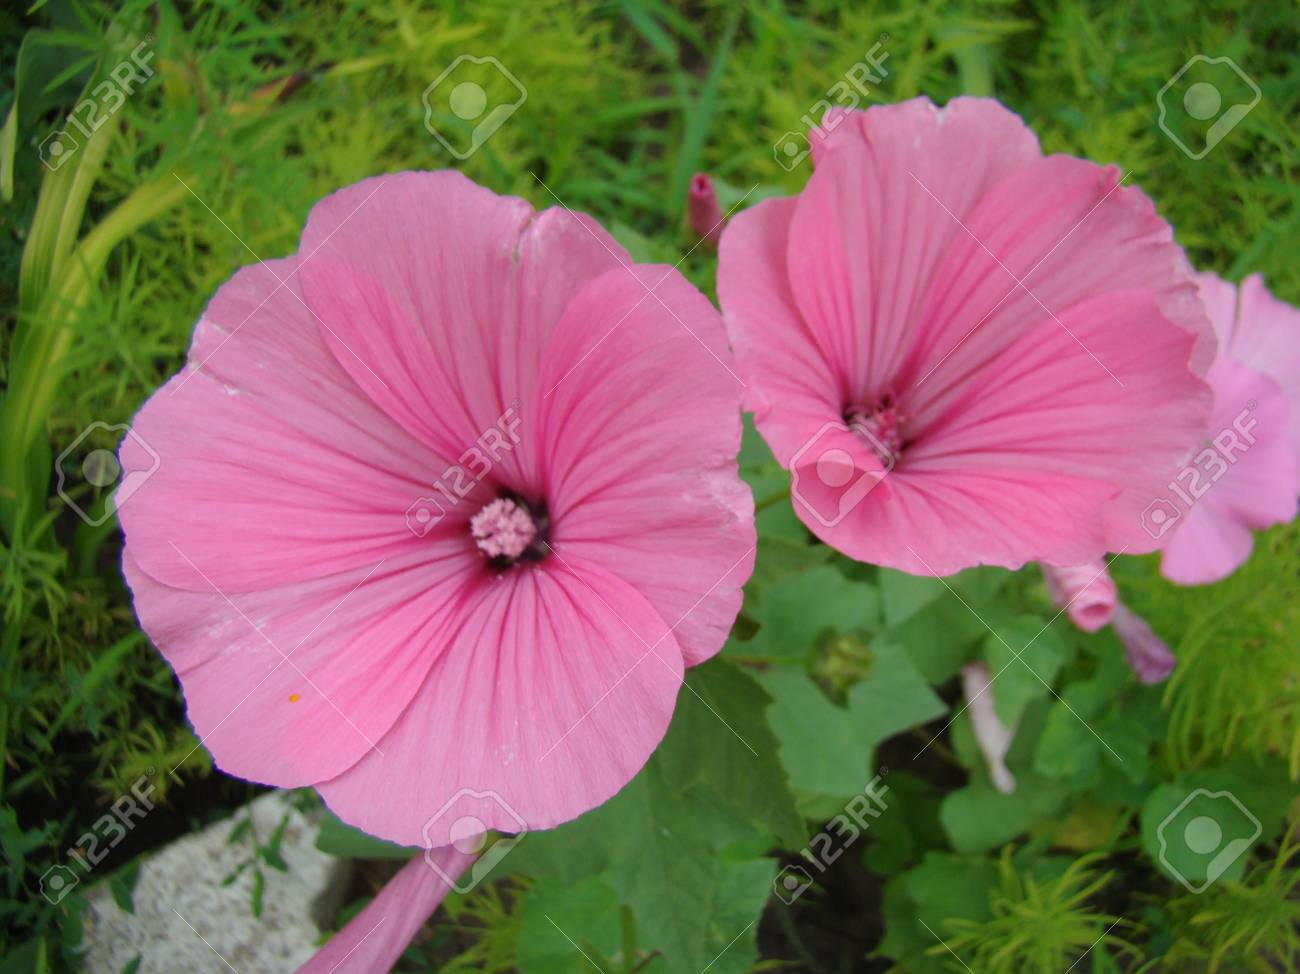 Lavatera growing from seed 88